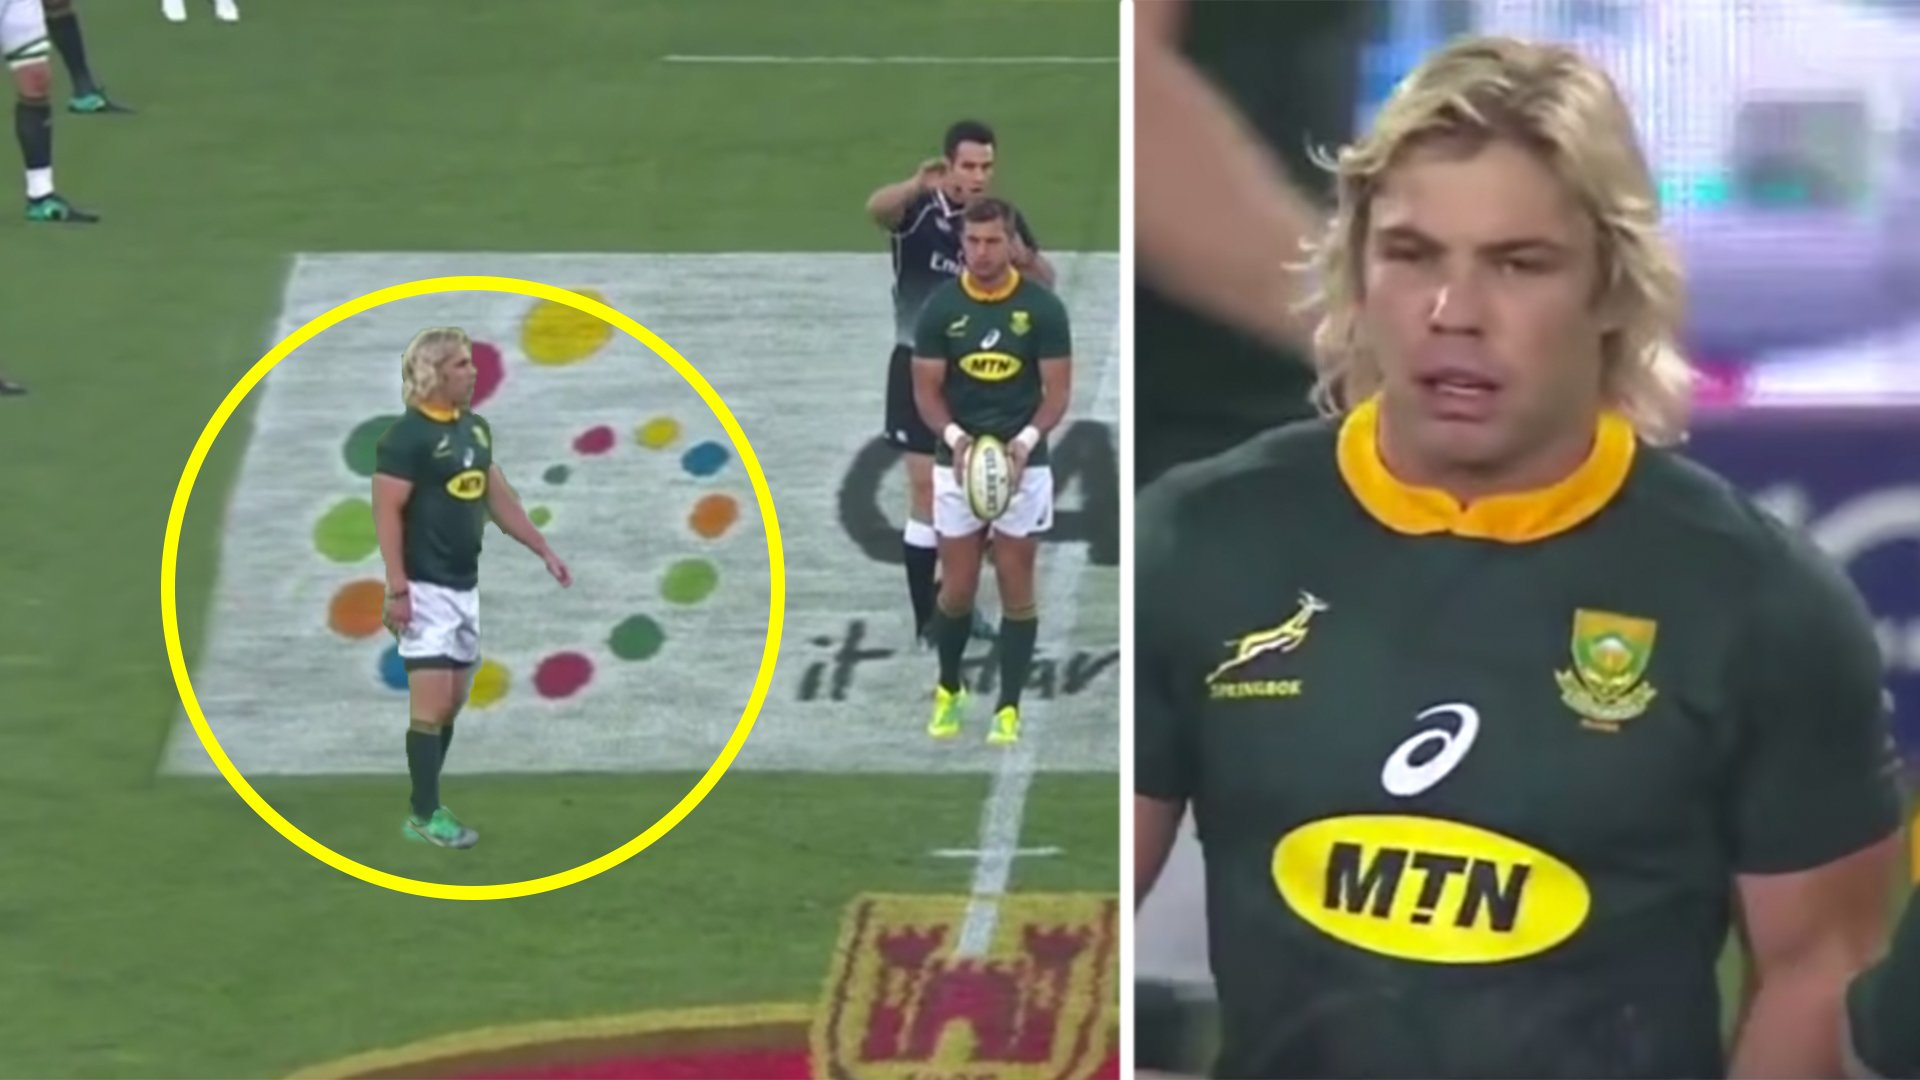 The match where Faf de Klerk proved he was the best scrum half in a generation